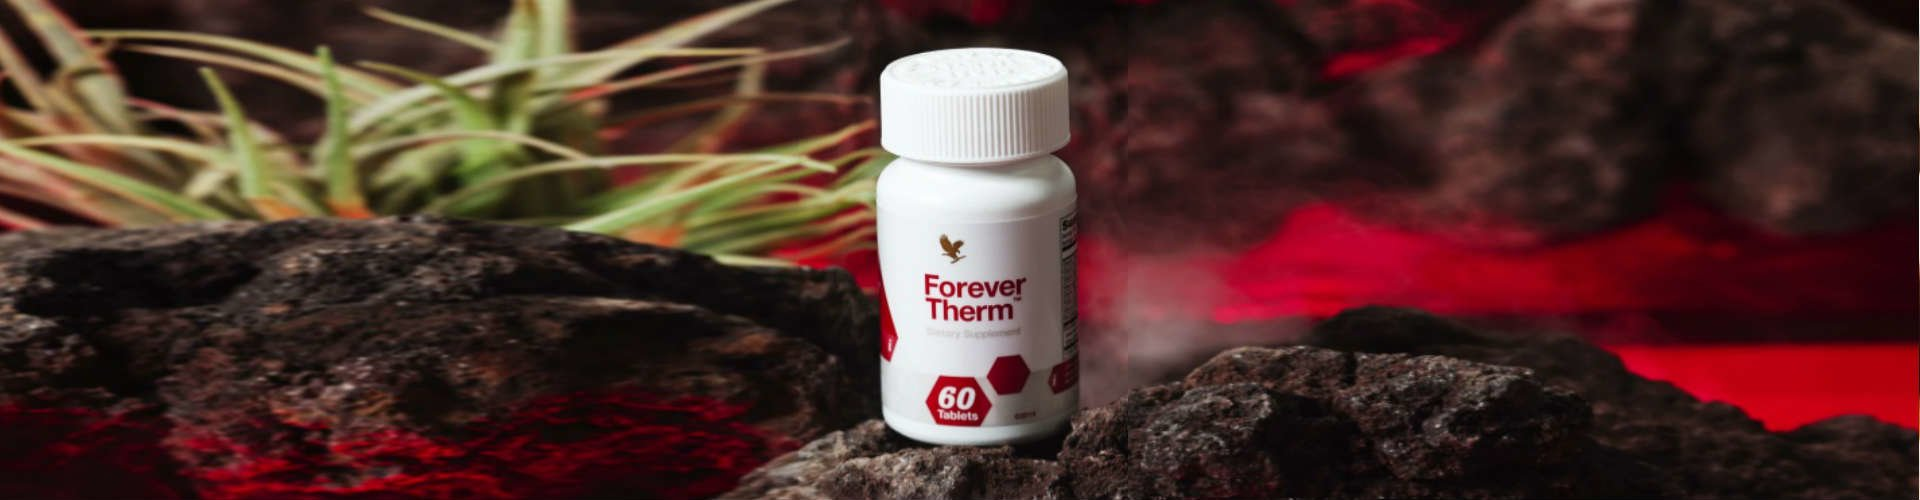 Energiestoffwechsel Tabletten, Forever Therm 463